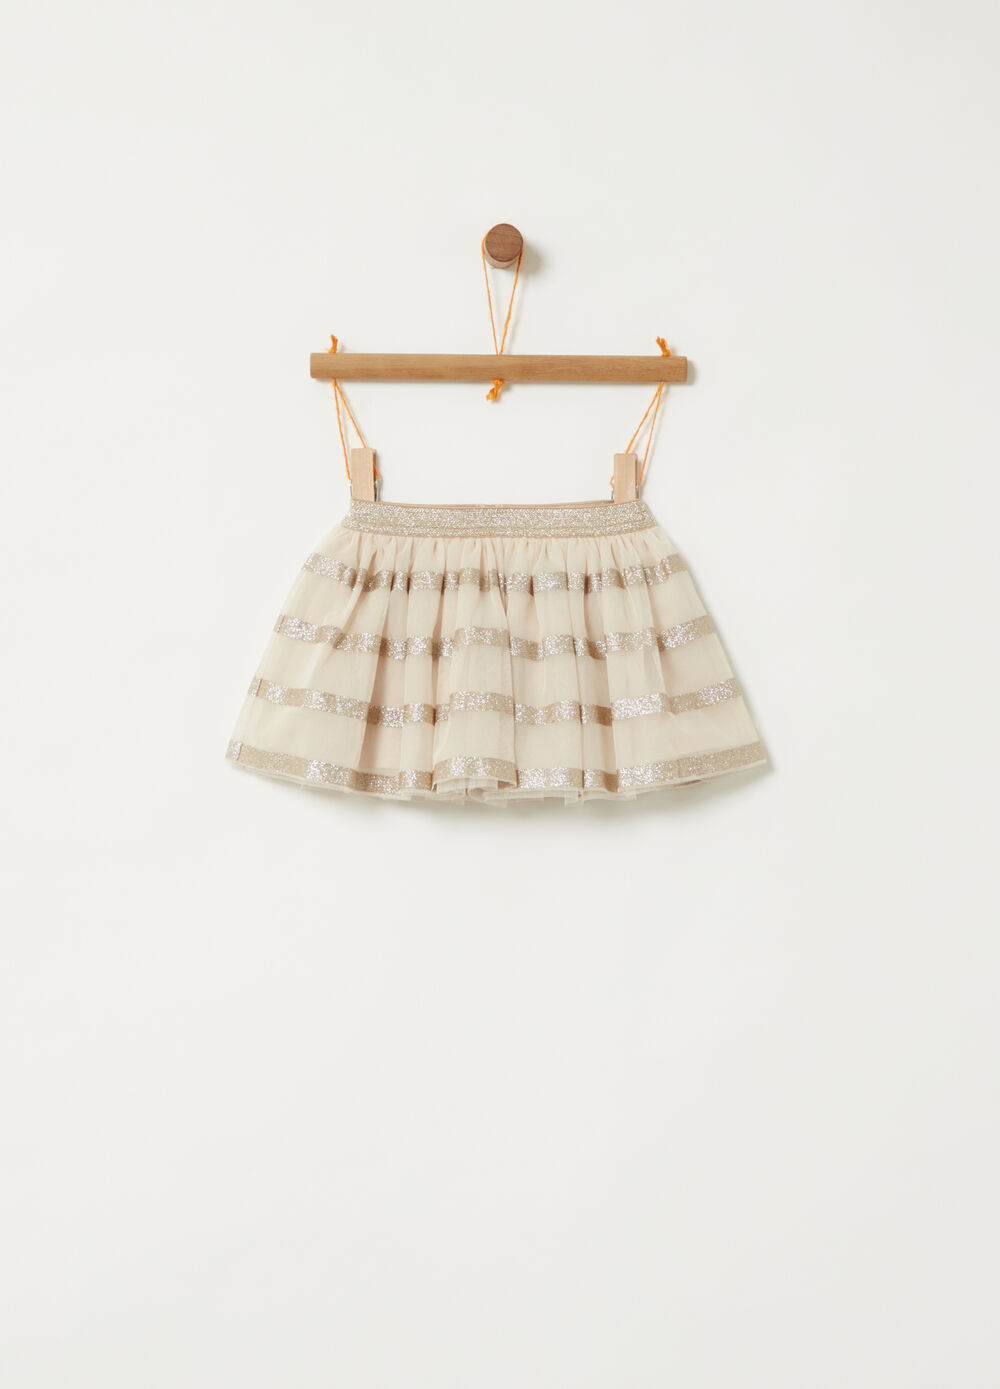 Tulle skirt with gold glitter pattern